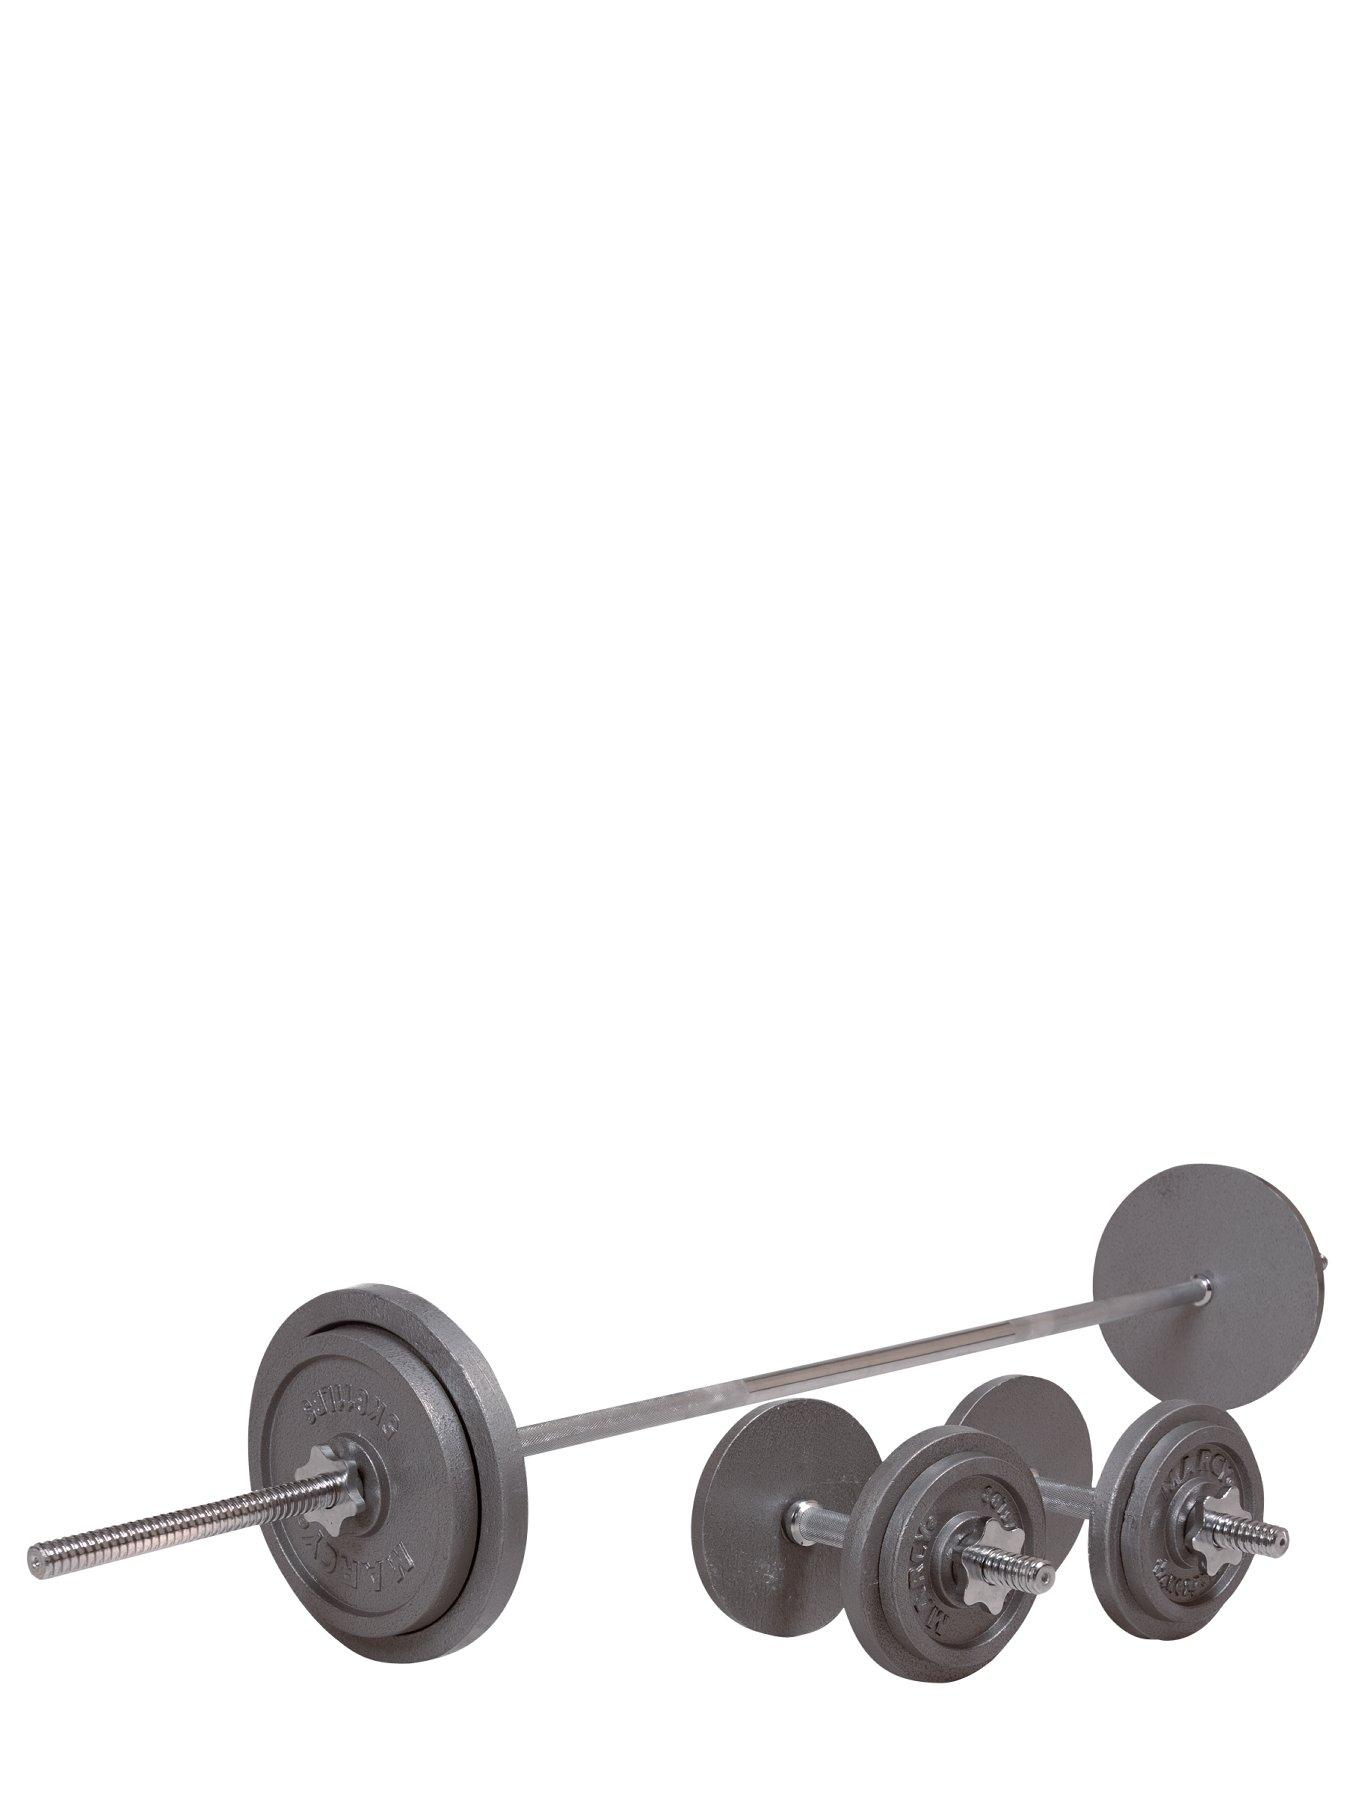 50kg Cast Iron/Dumbbell Set with 6ft Bar